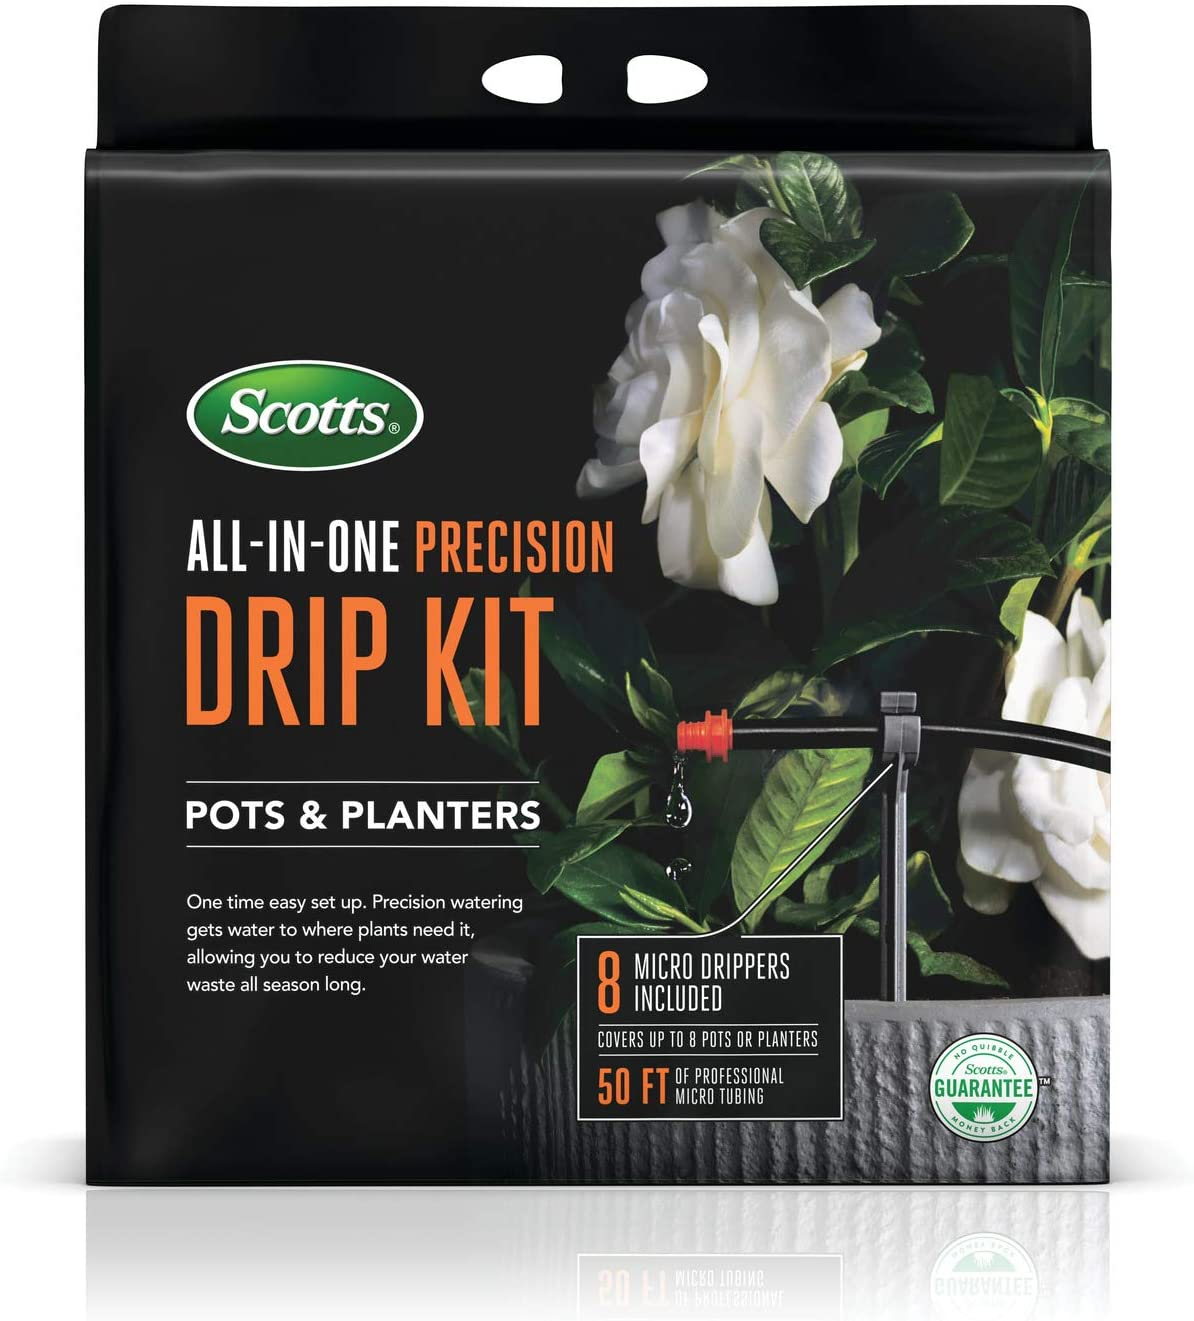 Scotts All-in-One Precision Drip Kit - Includes 8 Micro Drippers and 50 ft. of Professional Micro Tubing, Precision Watering for Pots and Planters, Covers up to 8 Pots or Planters